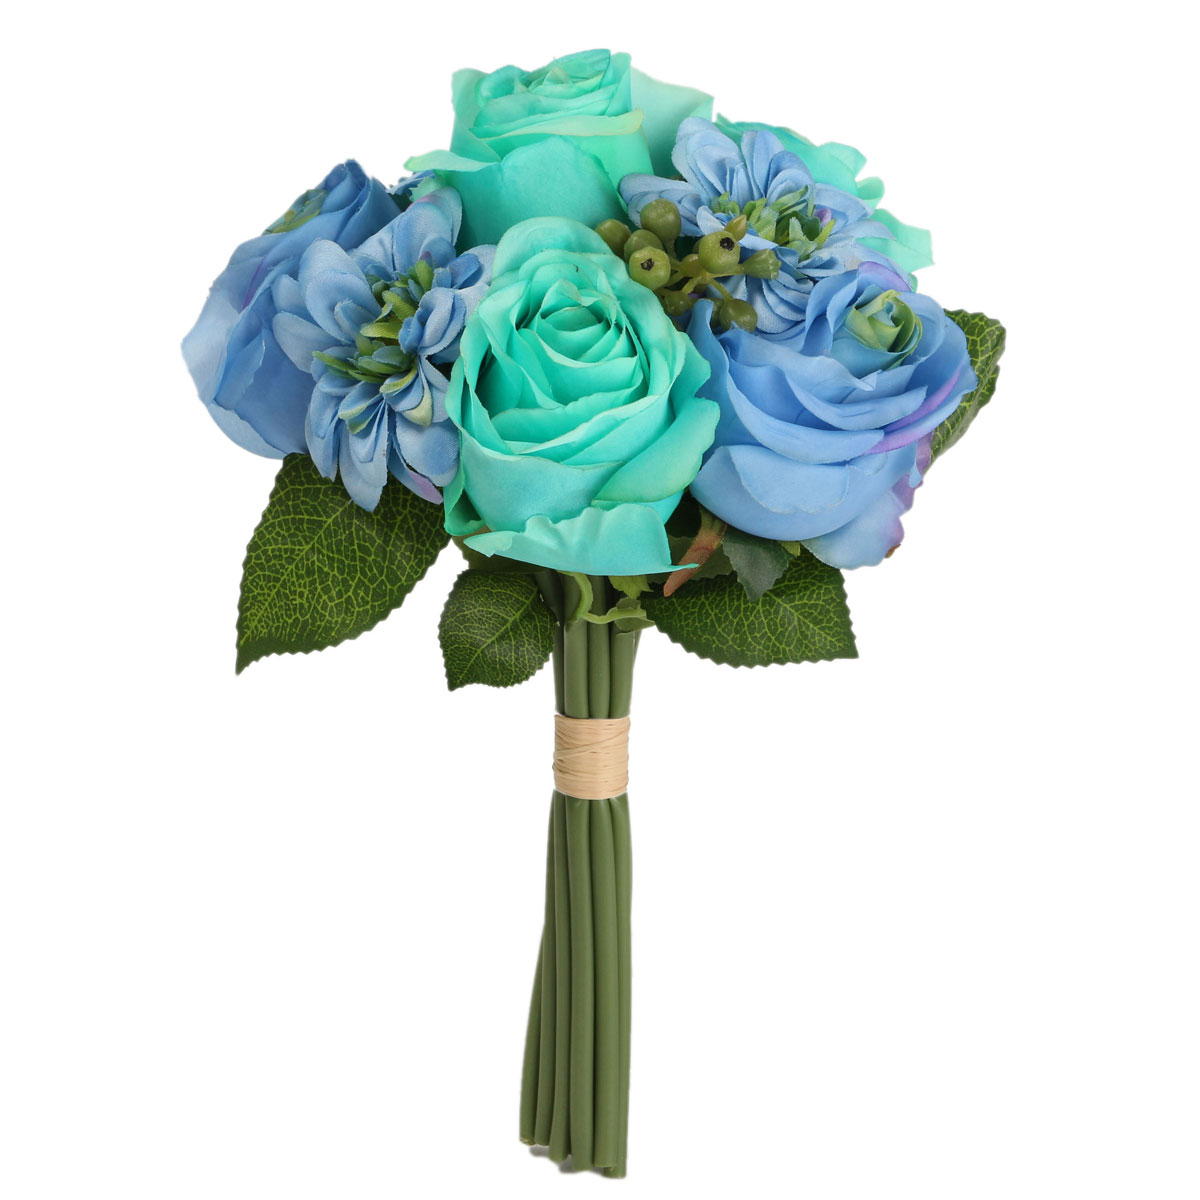 Bride Silk Rose Dahlia Bouquet Artificial Flower Wedding Party Supply Home Decoration